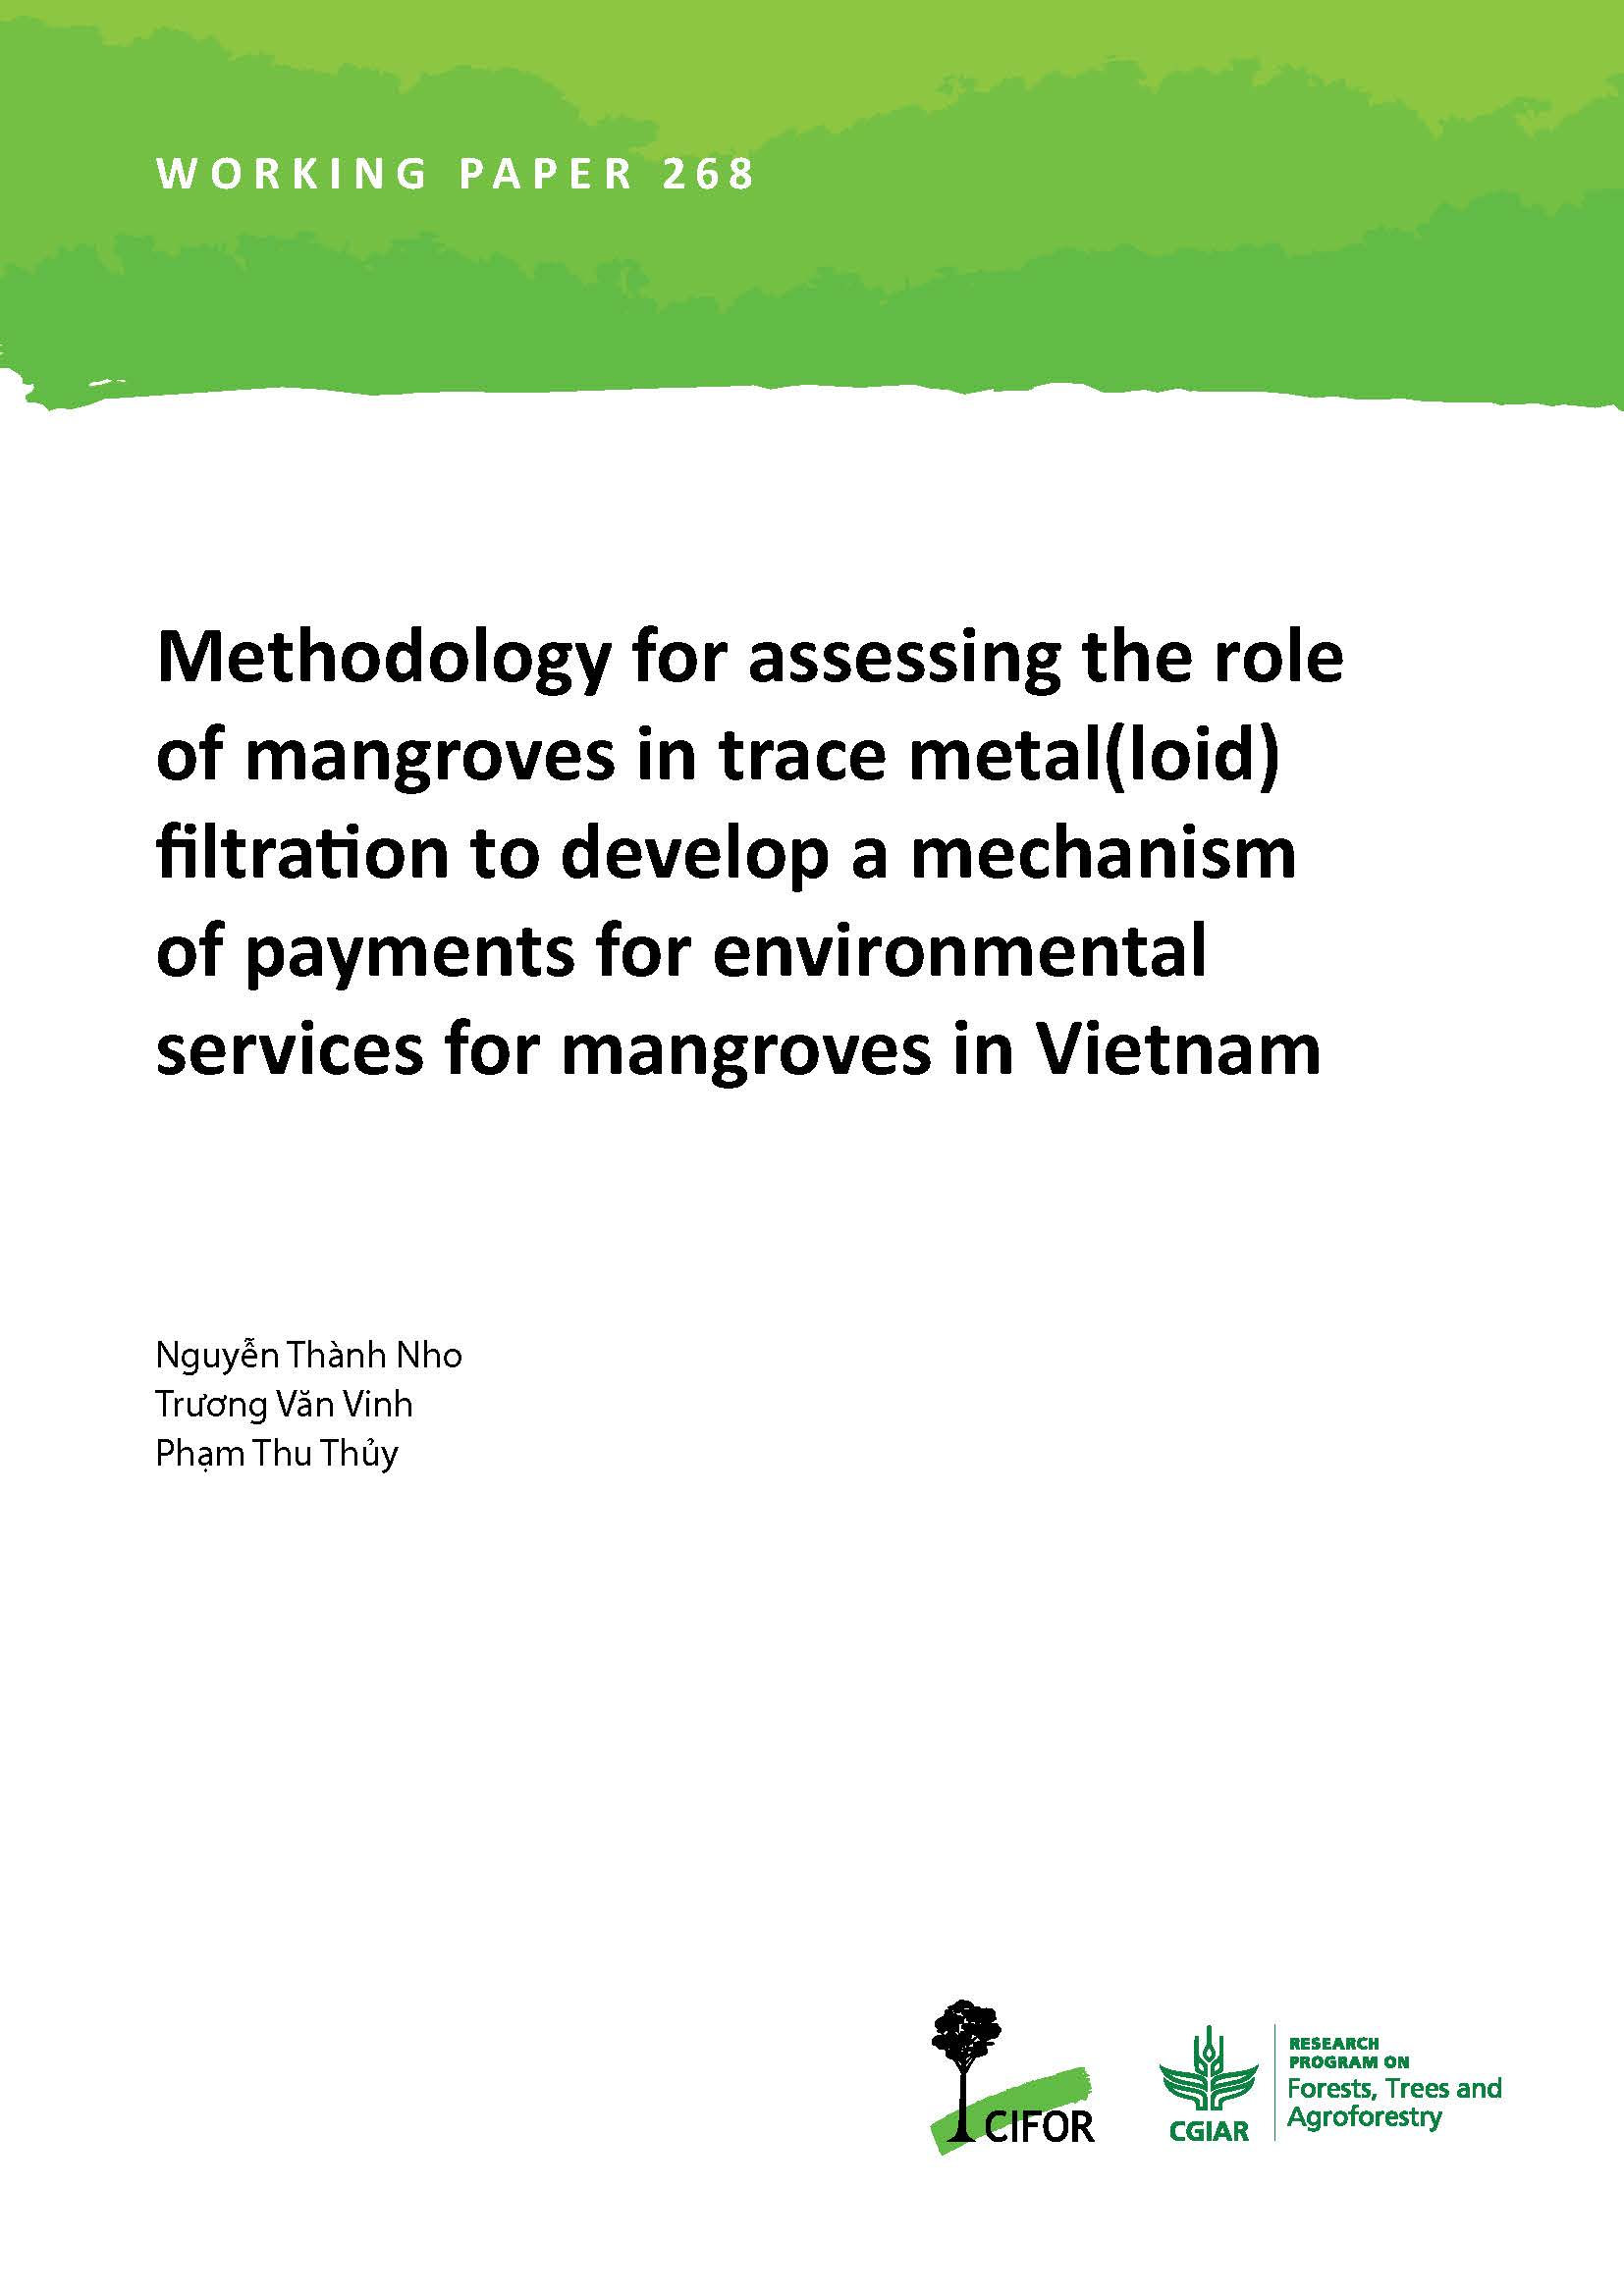 Methodology for assessing the role of mangroves in trace metal(loid) filtration to develop a mechanism of payments for environmental services for mangroves in Vietnam